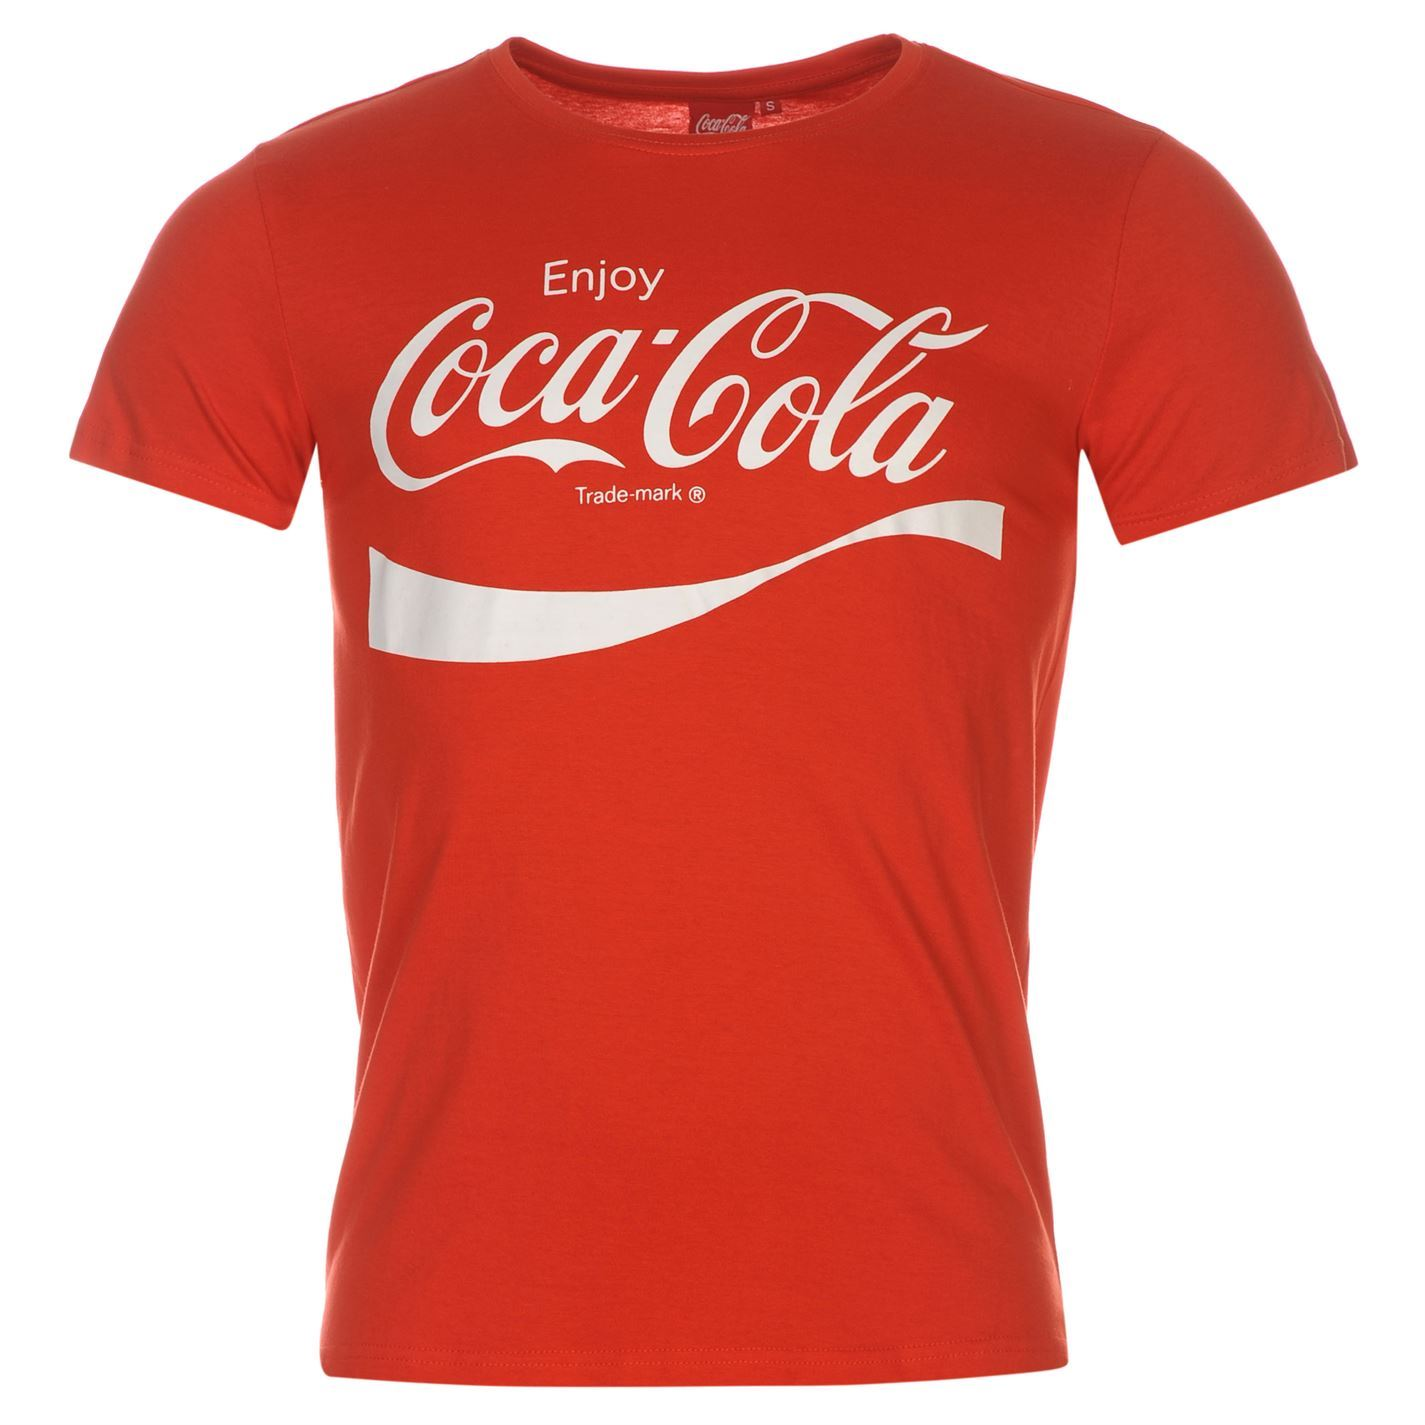 coca cola t shirt mens red top tee shirt ebay. Black Bedroom Furniture Sets. Home Design Ideas